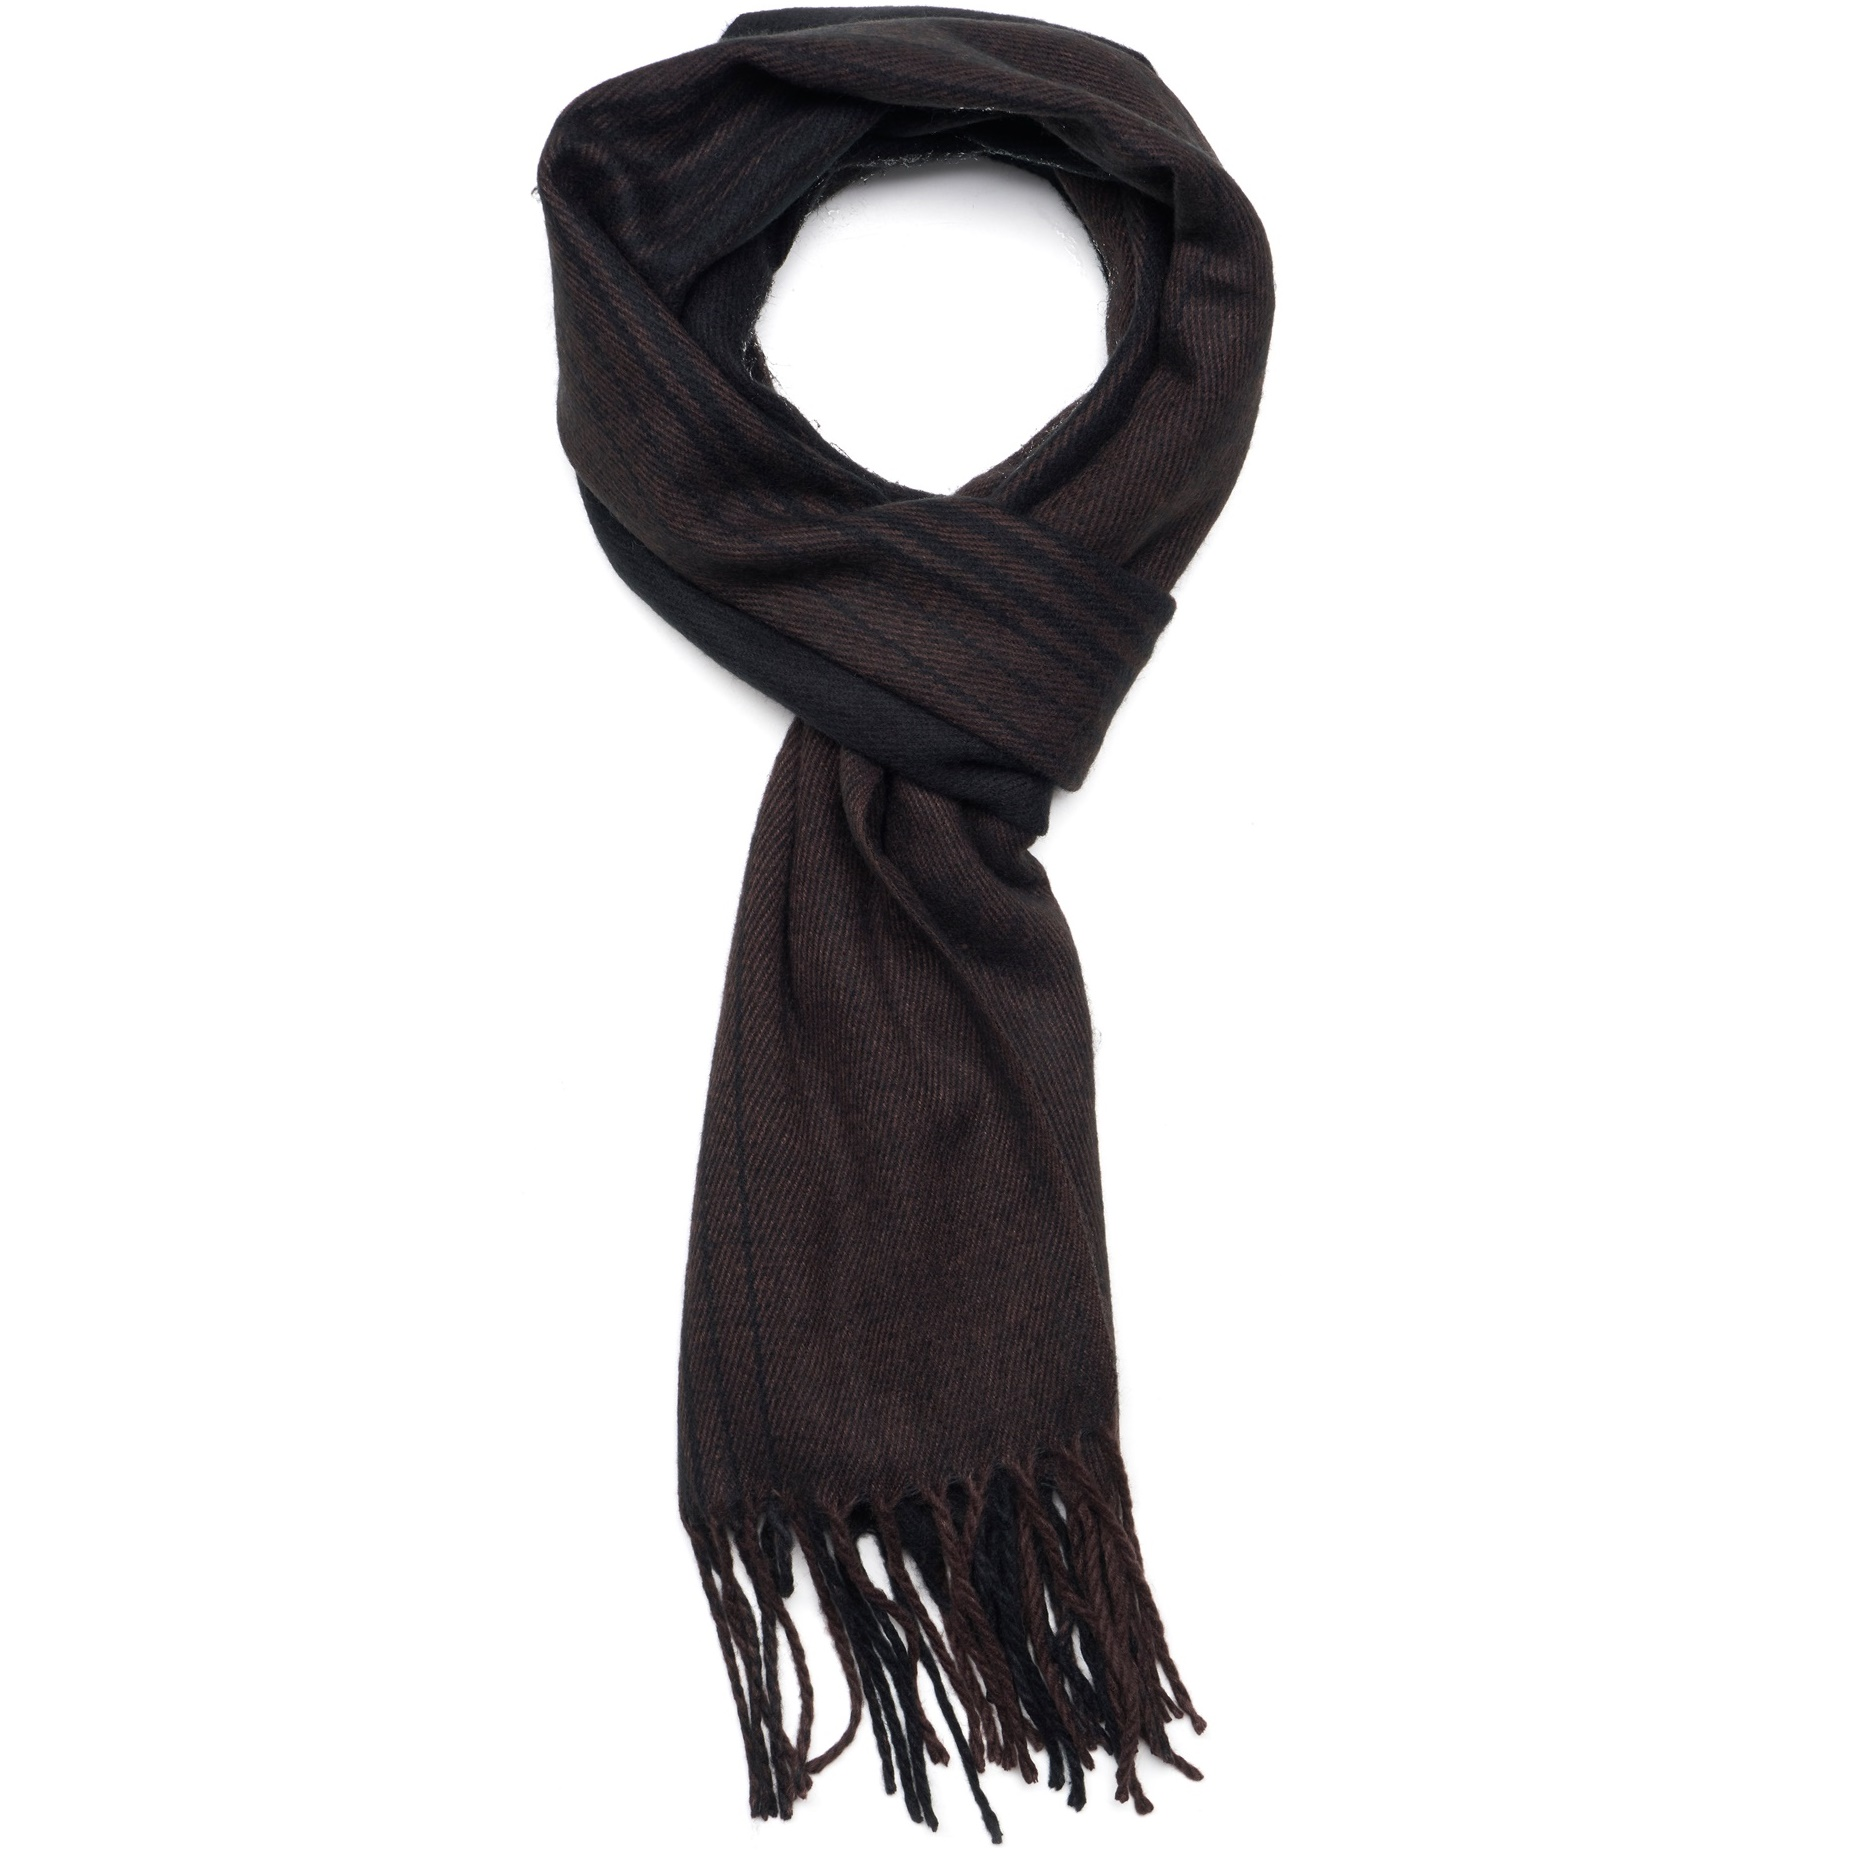 Hammer-Anvil-Mens-Plaid-Striped-Scarf-Womens-Winter-Scarves-Cashmere-Soft-Feel thumbnail 14